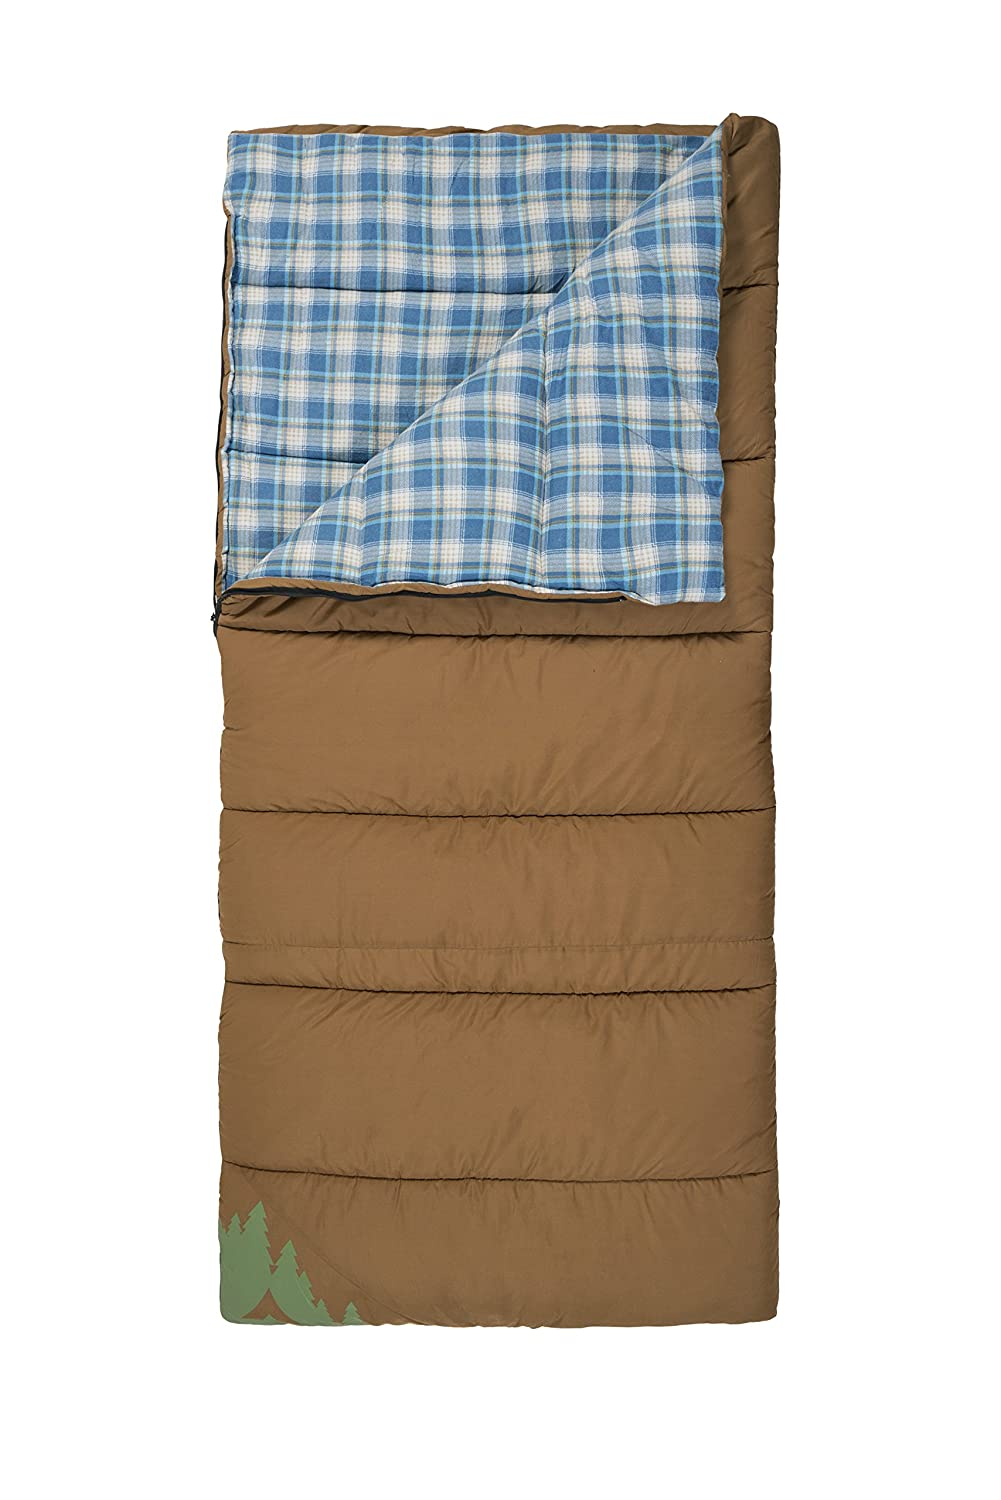 TETON Sports Evergreen Canvas Sleeping Bag Warm and Comfortable Sleeping Bag Great for Camping or Hunting Mild Weather Sleeping Bag Perfect for a Family Campout in the Backyard or the Great Outdoors